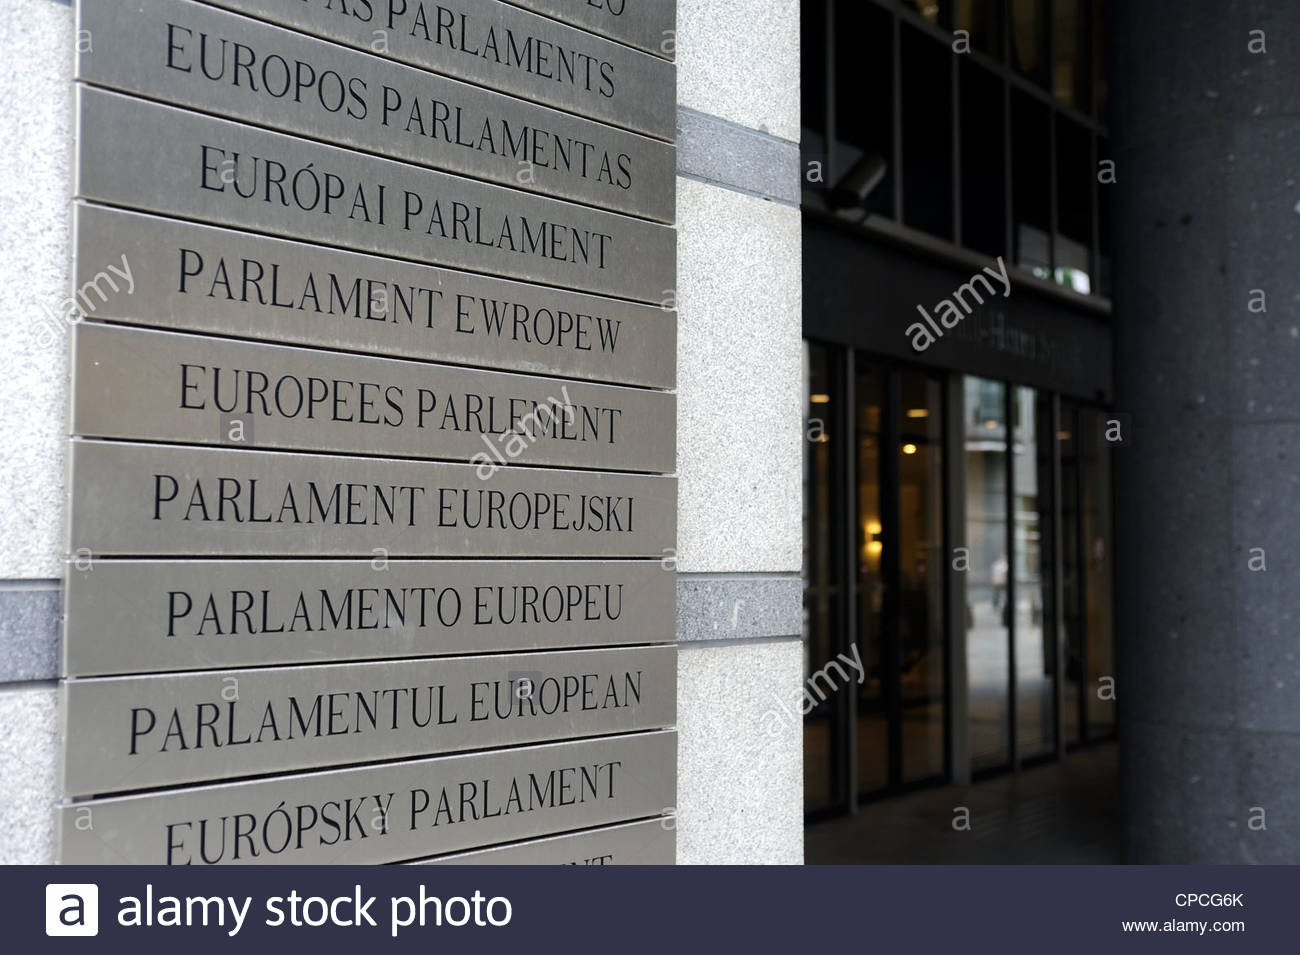 Brussels, Belgium European Parliament sign in many languages. - Stock Image